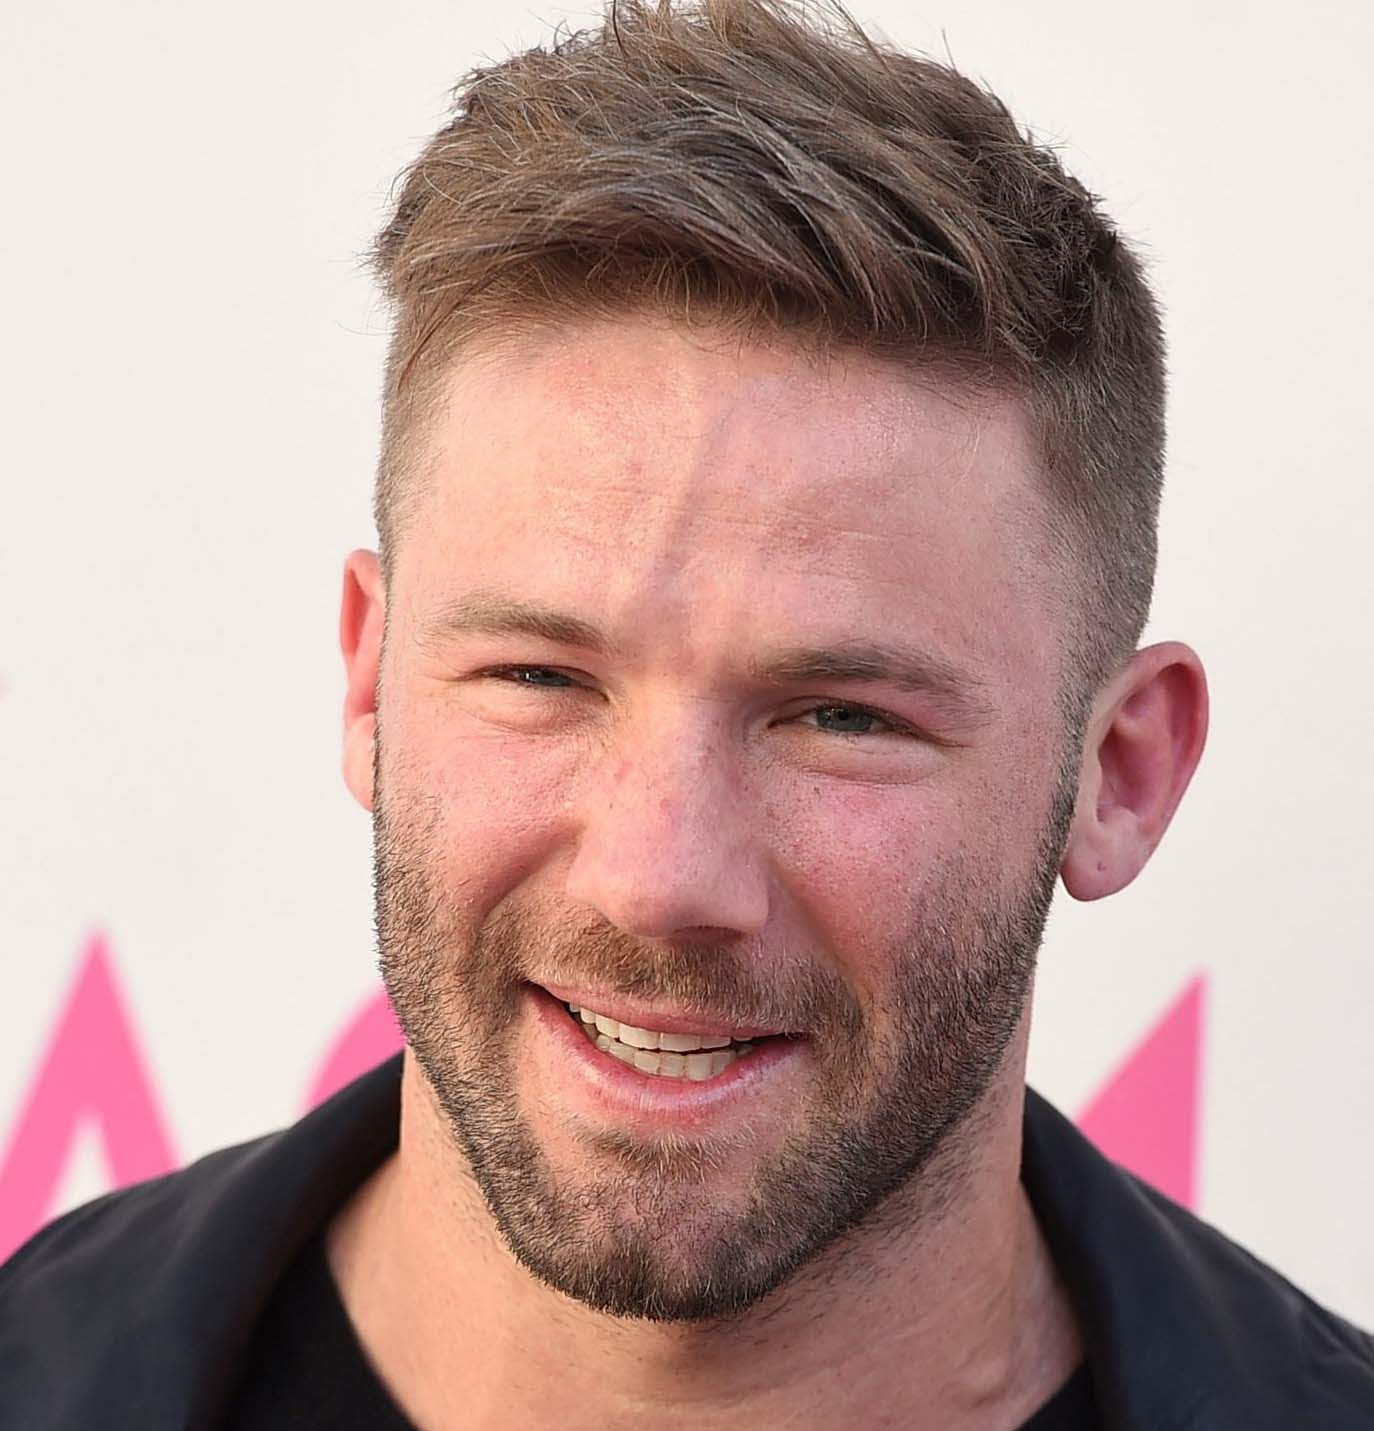 Julian Edelman Haircut 2018